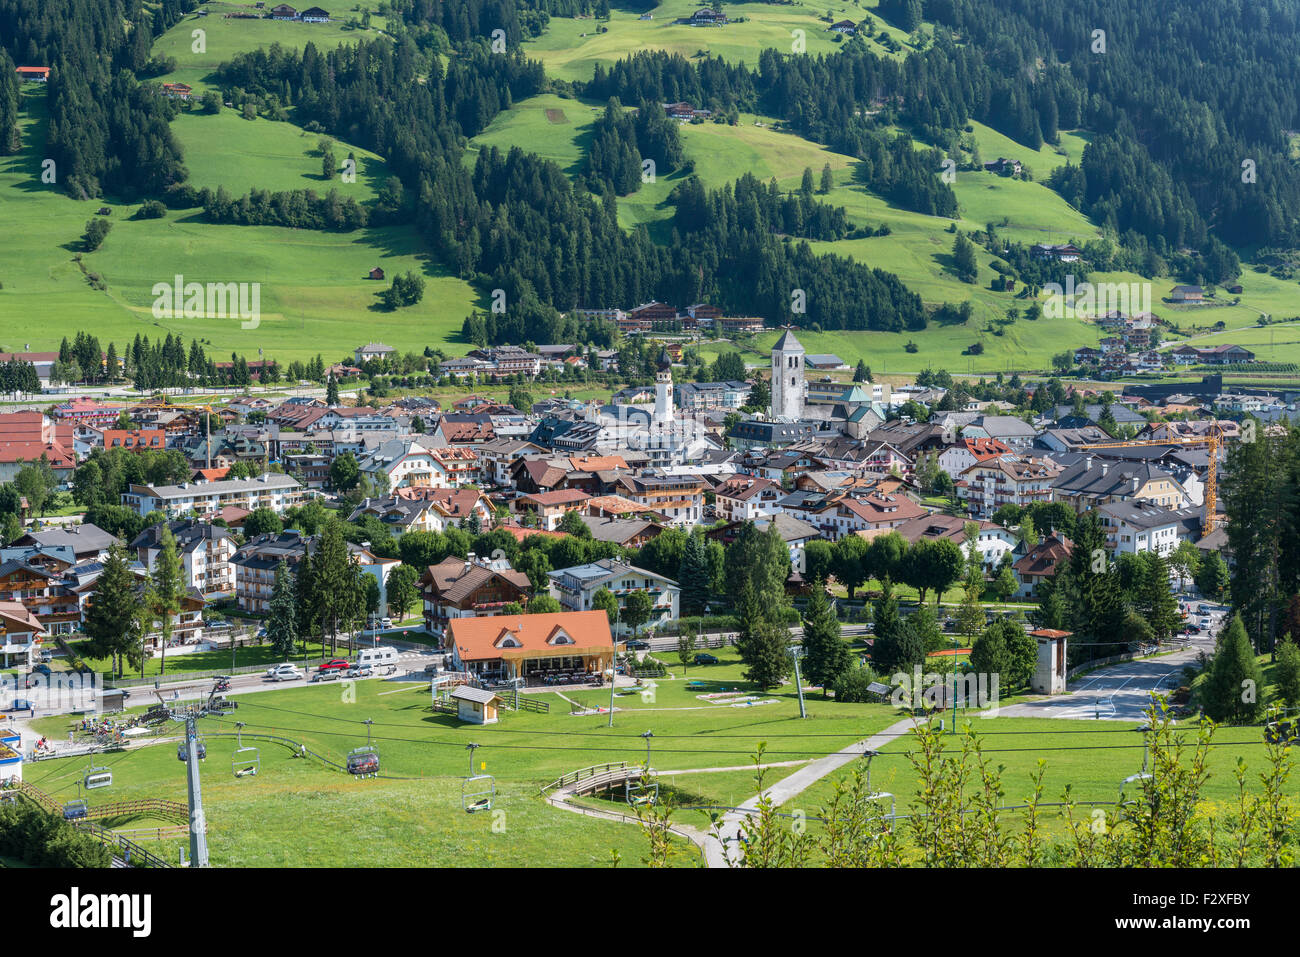 Innchen or San Candido, Dolomites, Trentino-Alto Adige, Province of South Tyrol, Italy Stock Photo